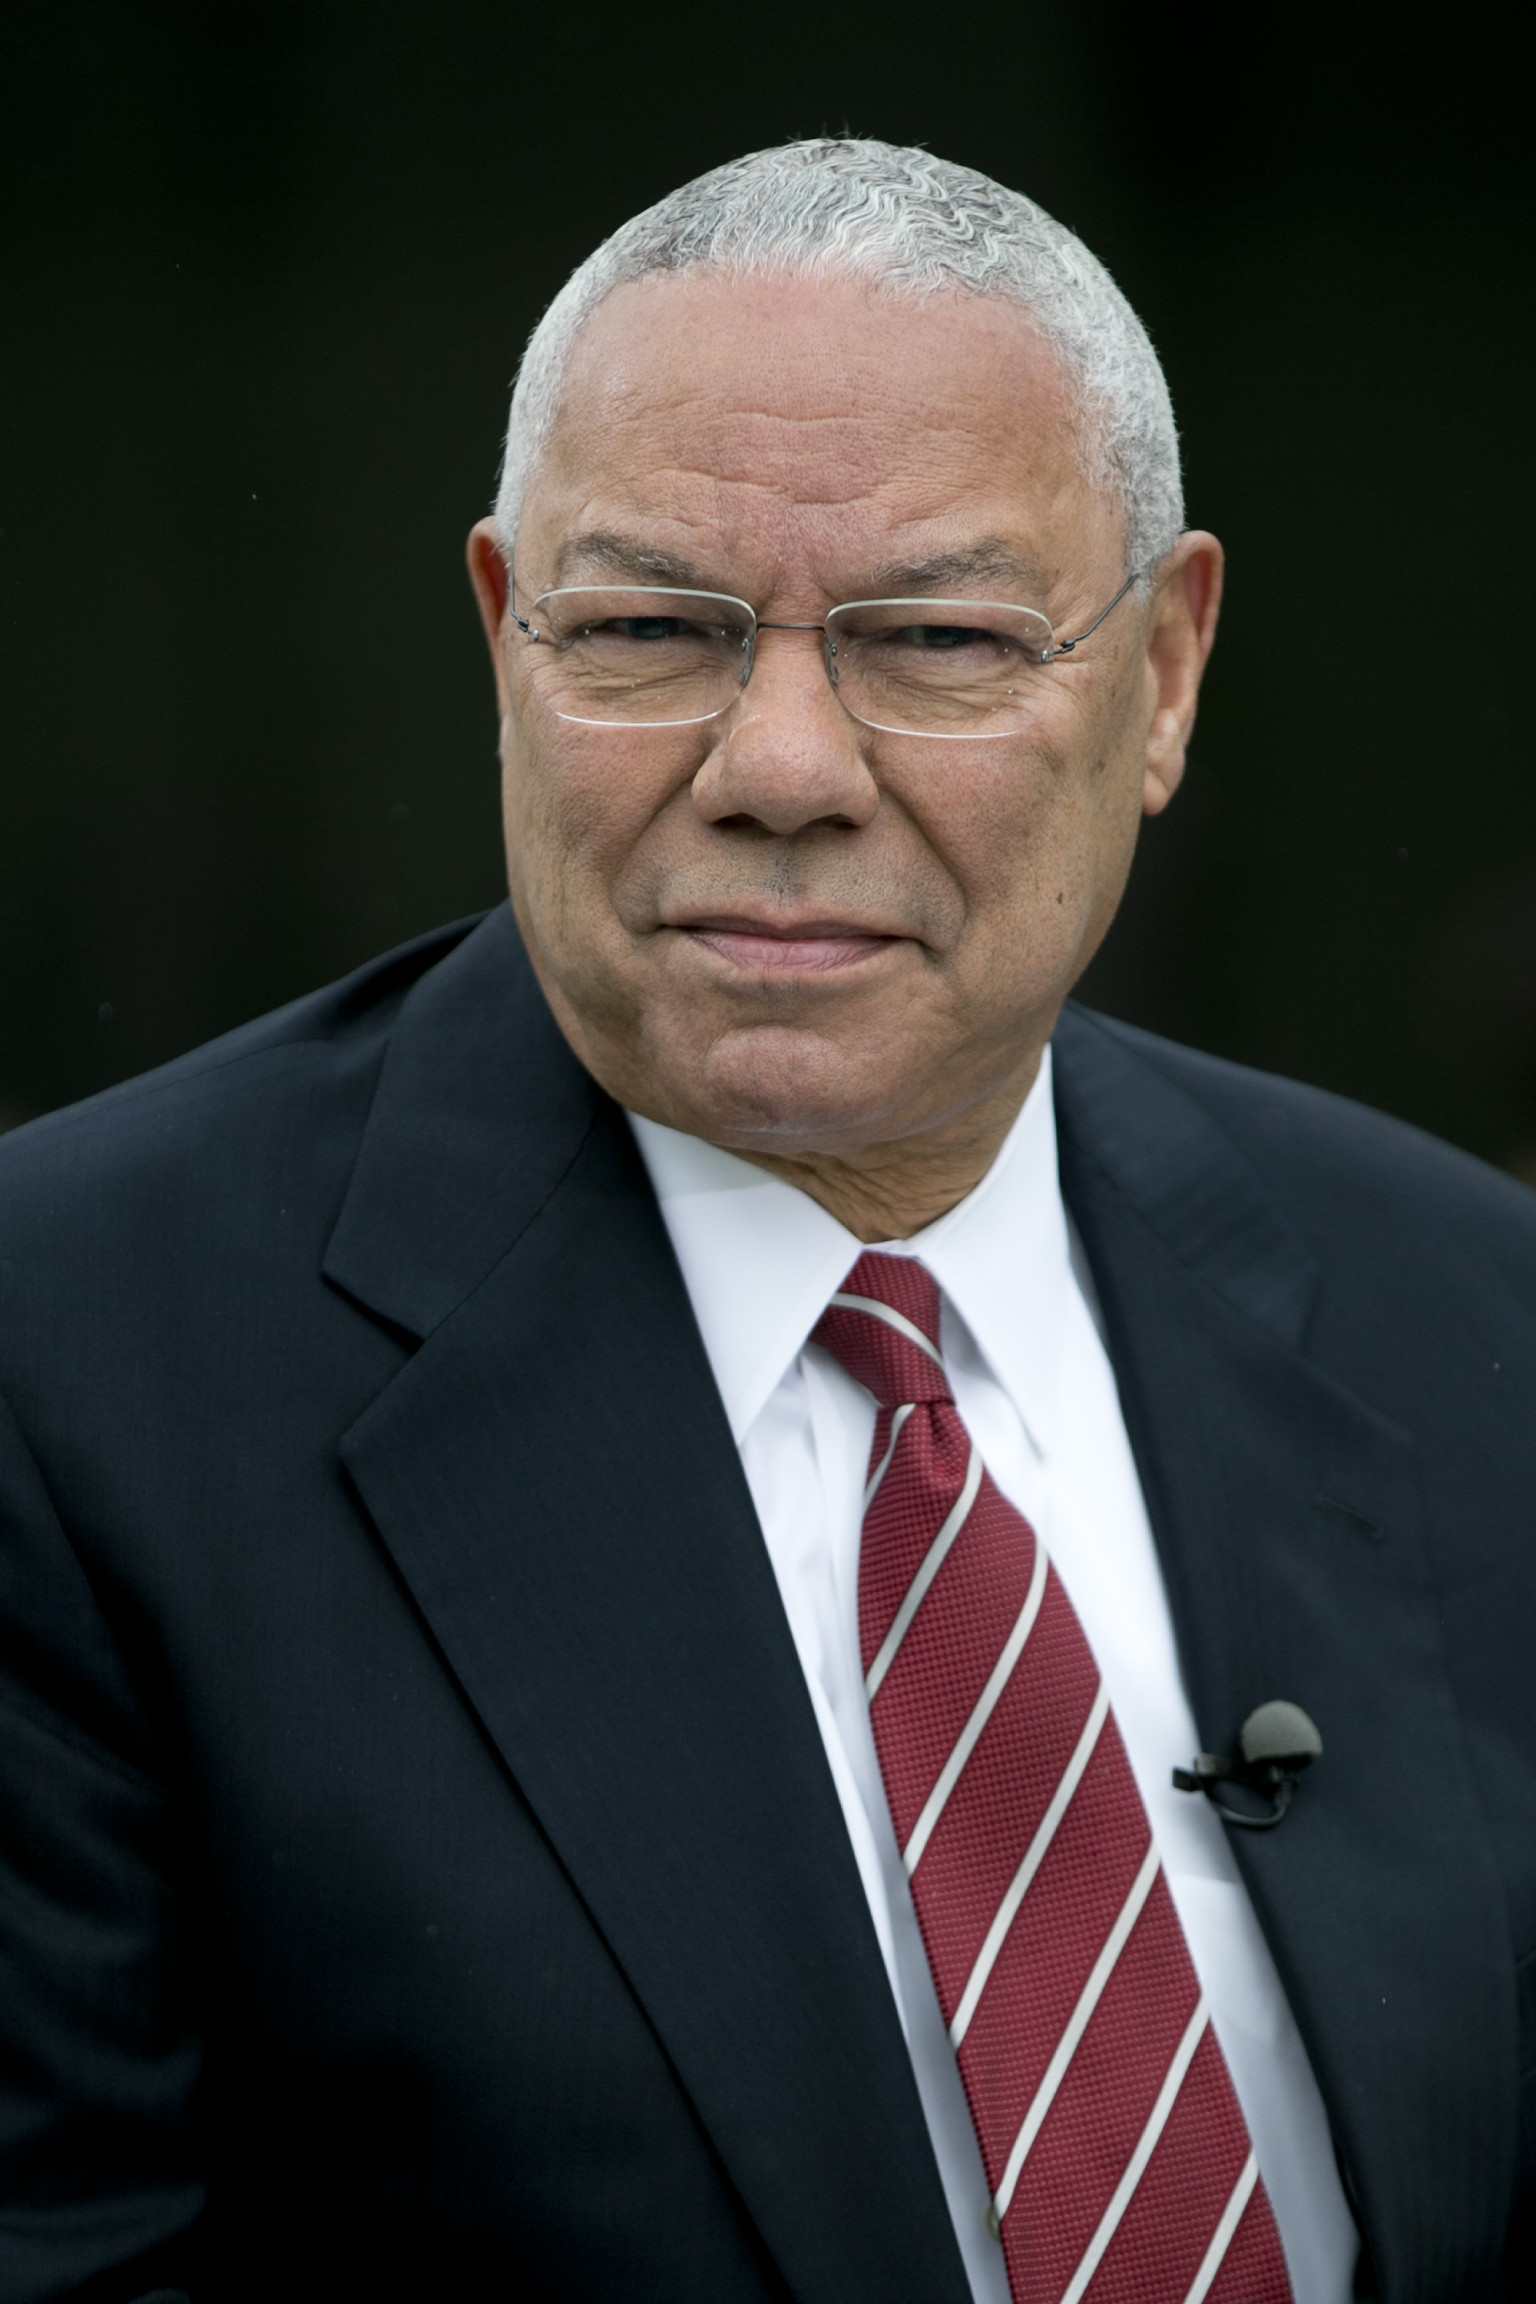 <b>Colin Powell</b> Gives GOP Stern Warning On Voter ID Laws - o-COLIN-POWELL-VOTER-ID-facebook